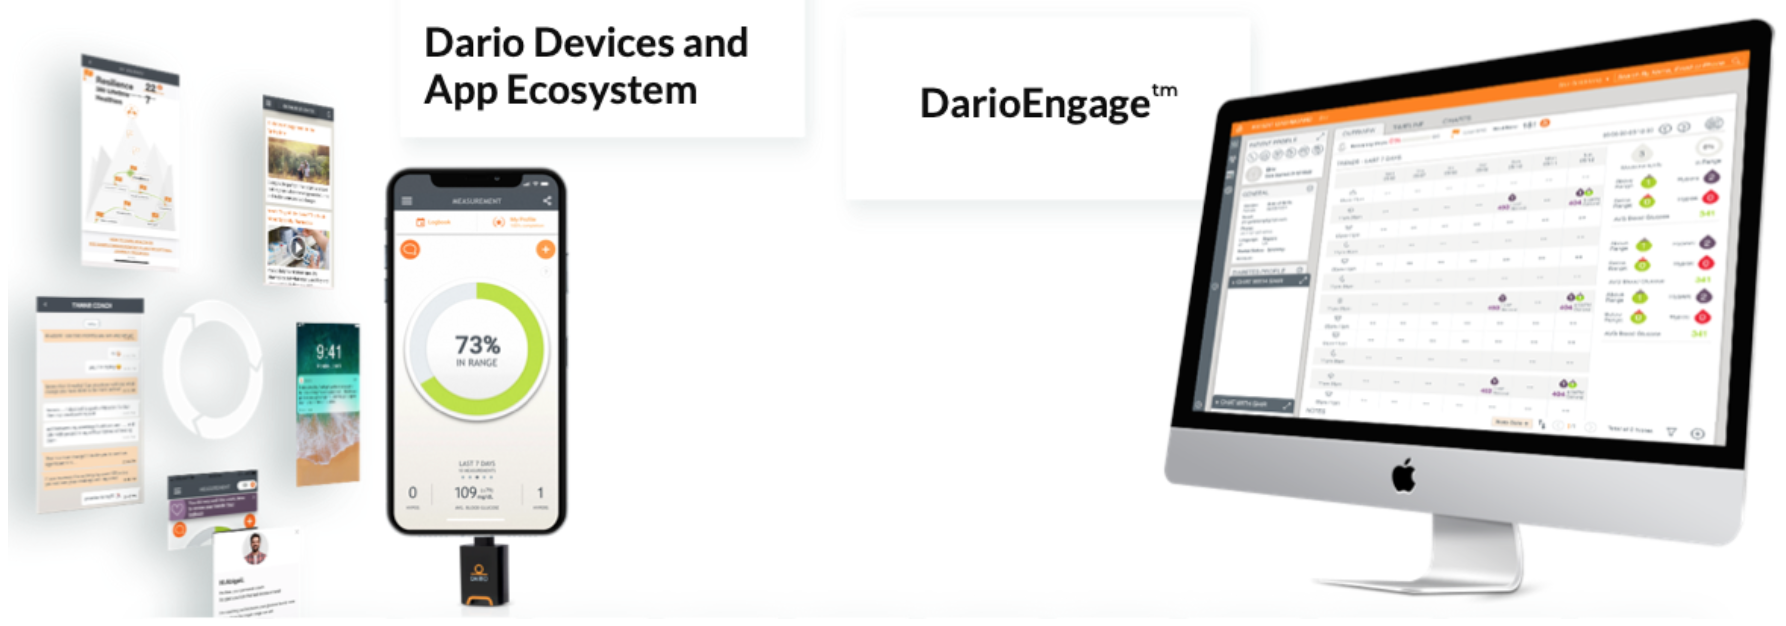 DRIO: DarioHealth and HMC HealthWorks Announce Partnership Agreement